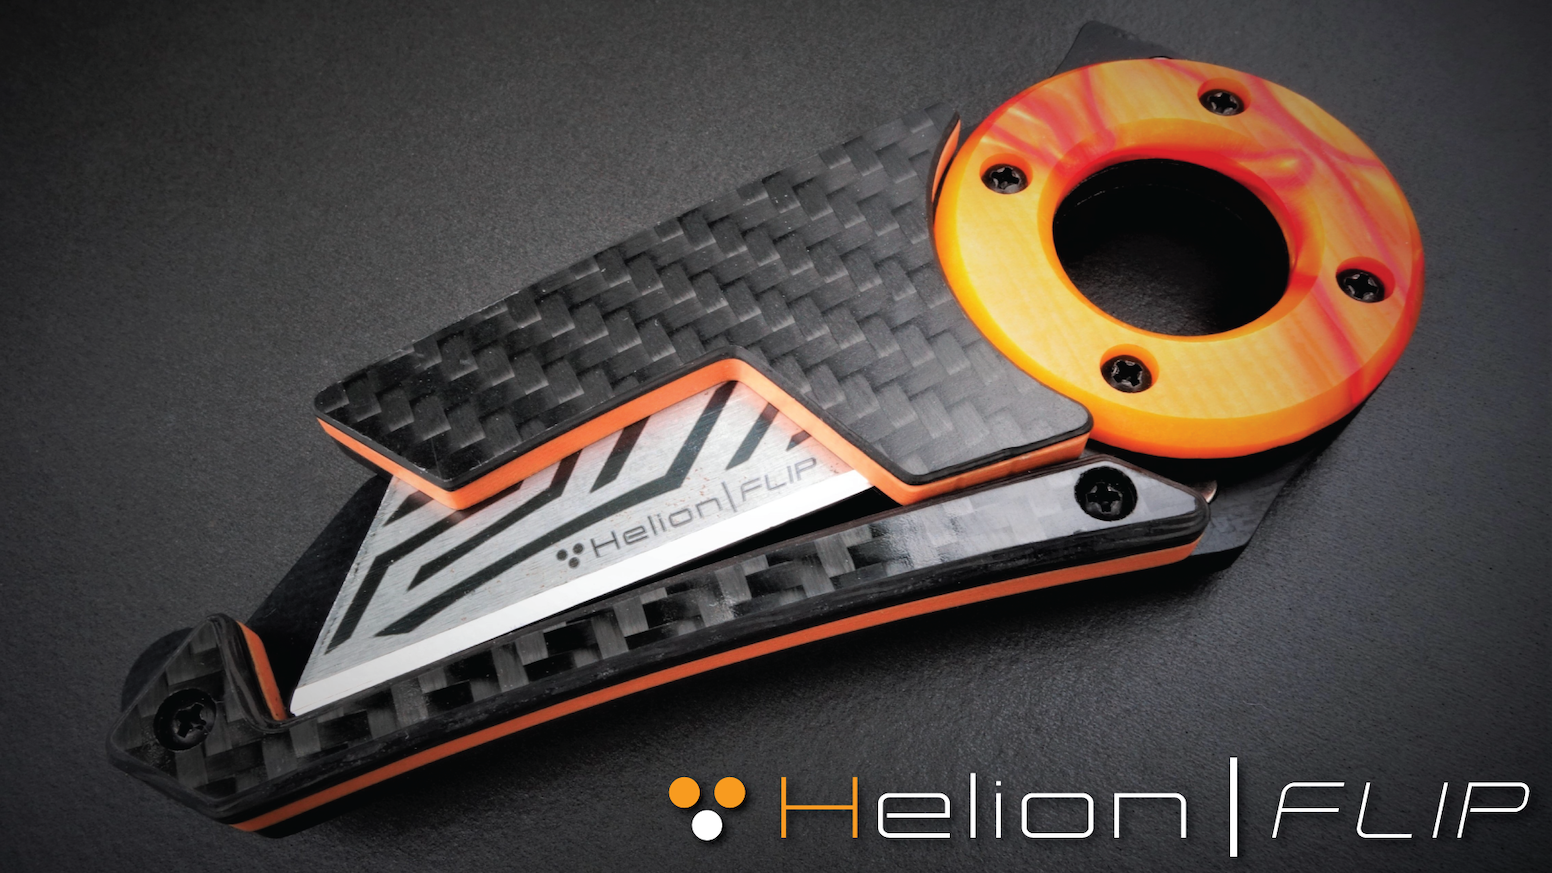 A feature packed EDC knife with tool-less blade change & a unique magnetic lock system. Crafted from exotic Kirinite & carbon fiber.